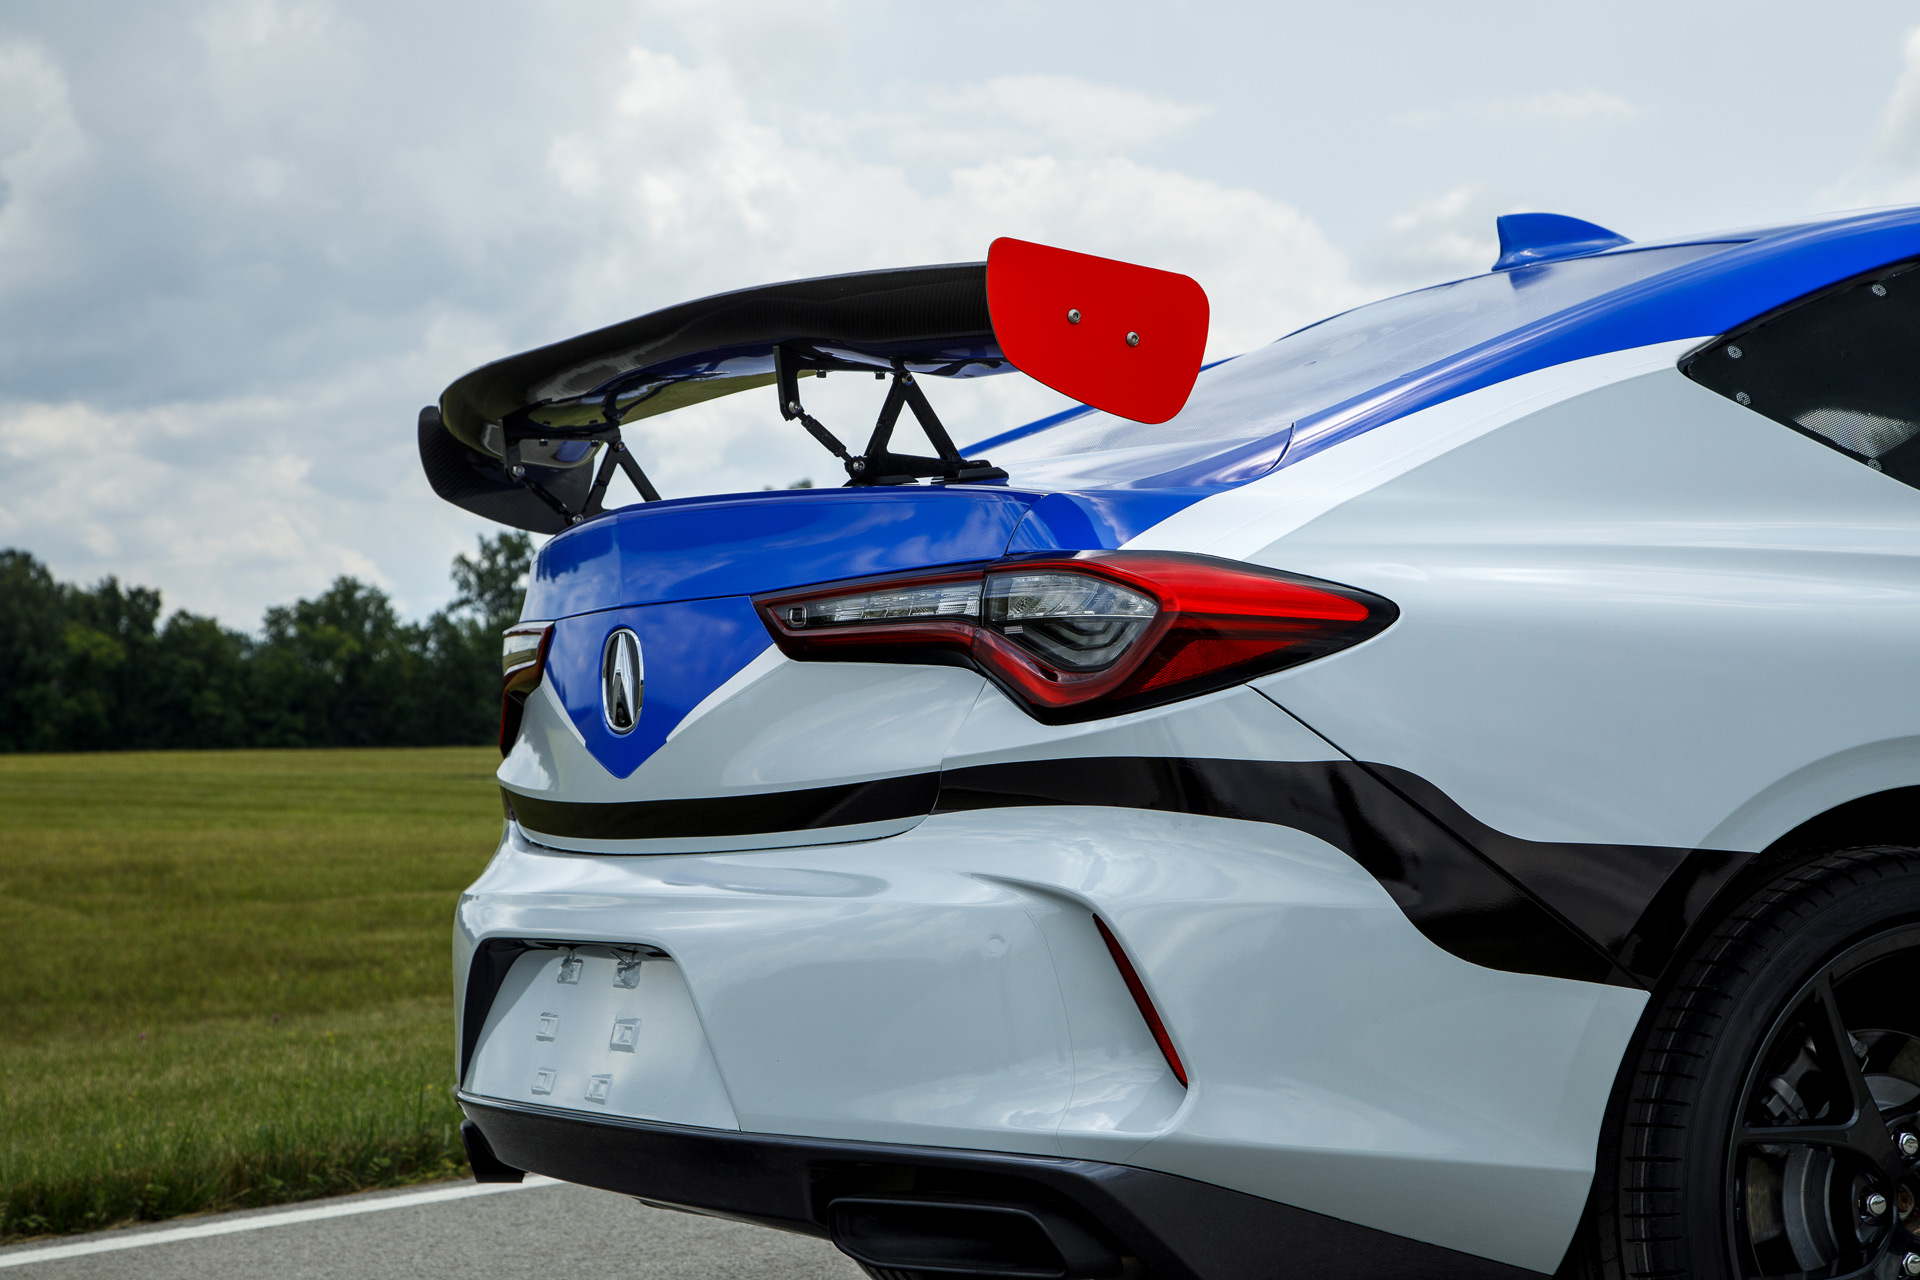 2020 - [Acura] TLX - Page 2 2021-acura-tlx-race-car-to-tackle-2020-pikes-peak-international-hill-climb_100754383_h